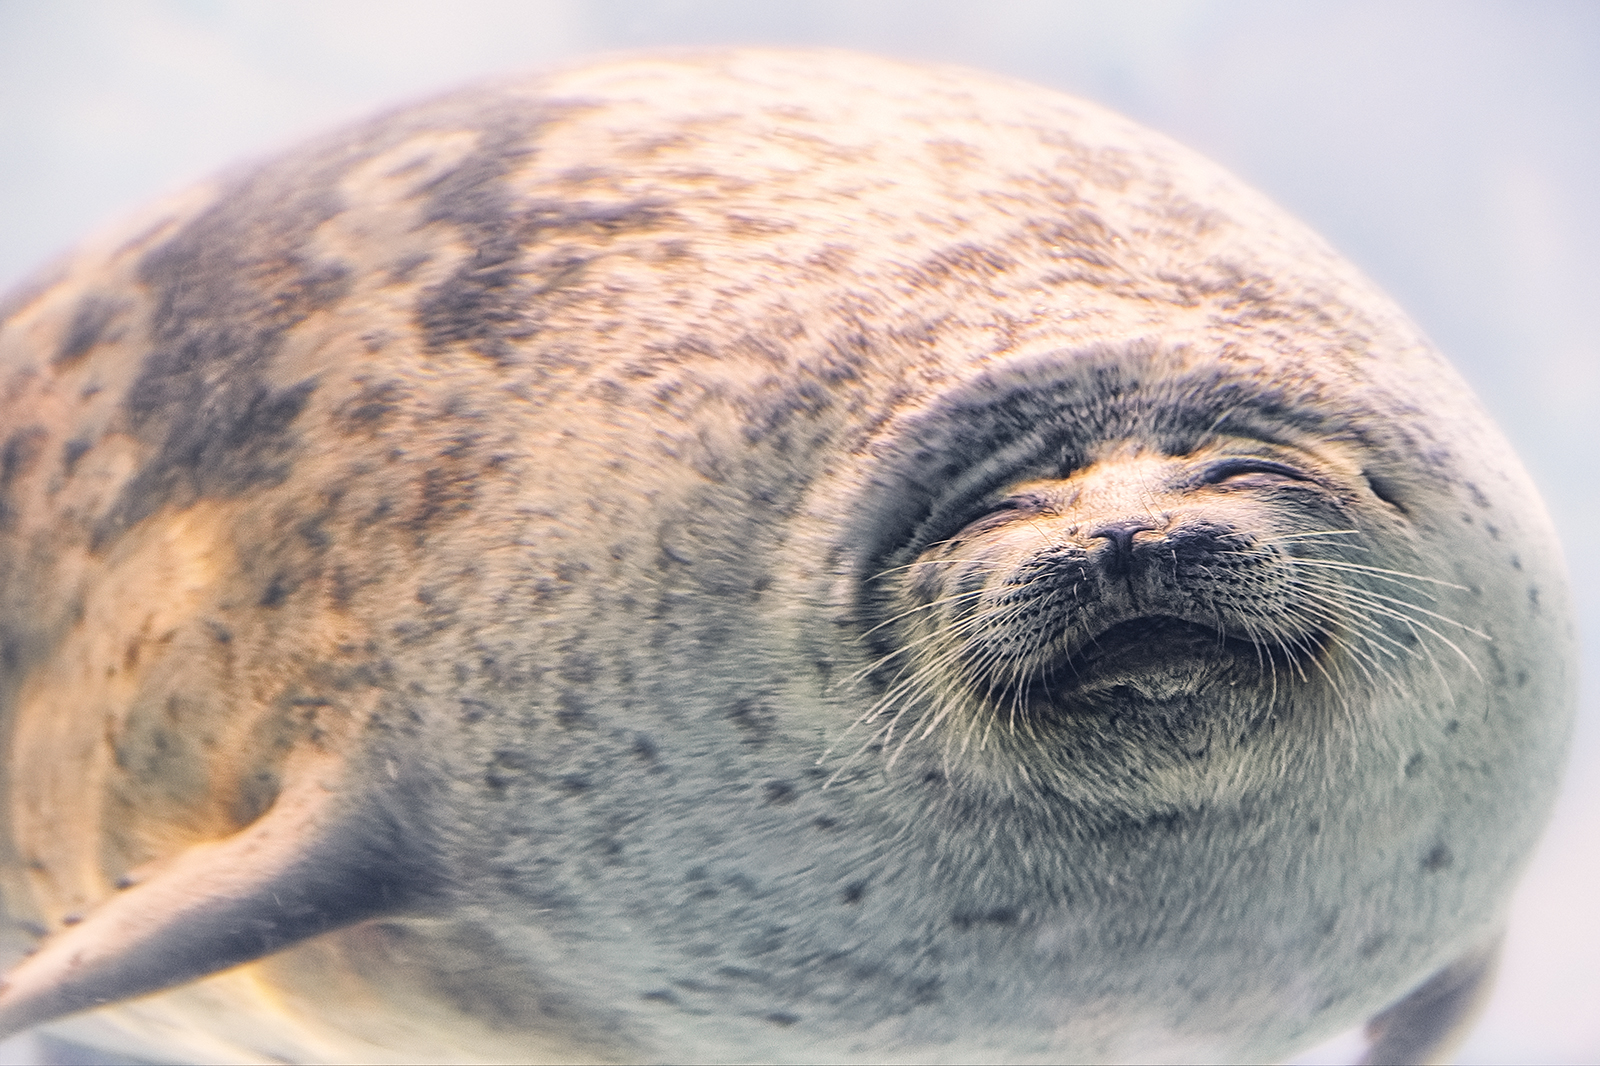 Smiling Ringed Seal